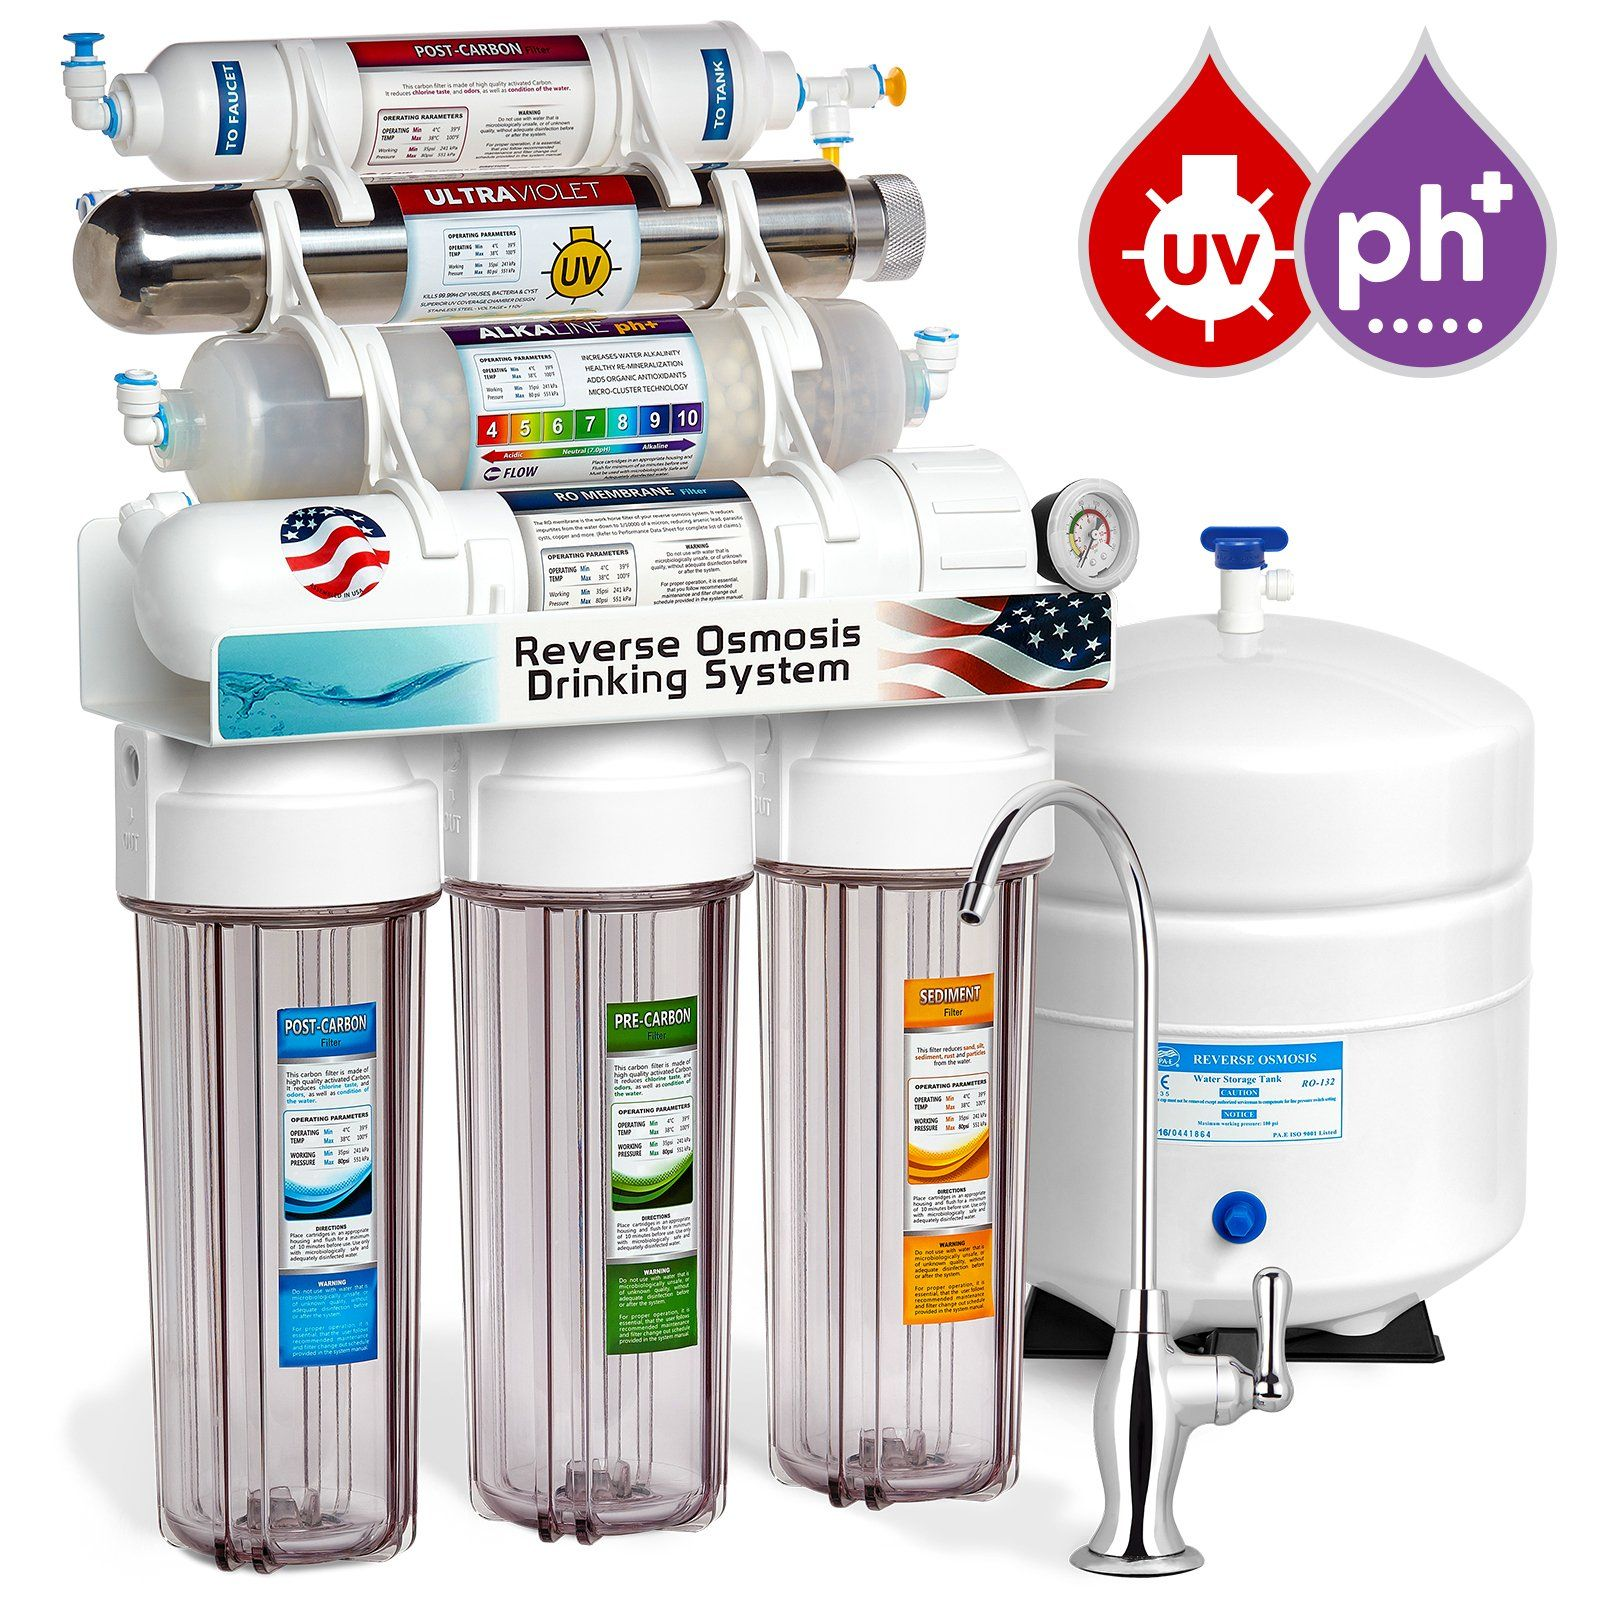 Home Ro Water Systems Express Water 11 Stage Uv Ultraviolet Alkaline Reverse Osmosis